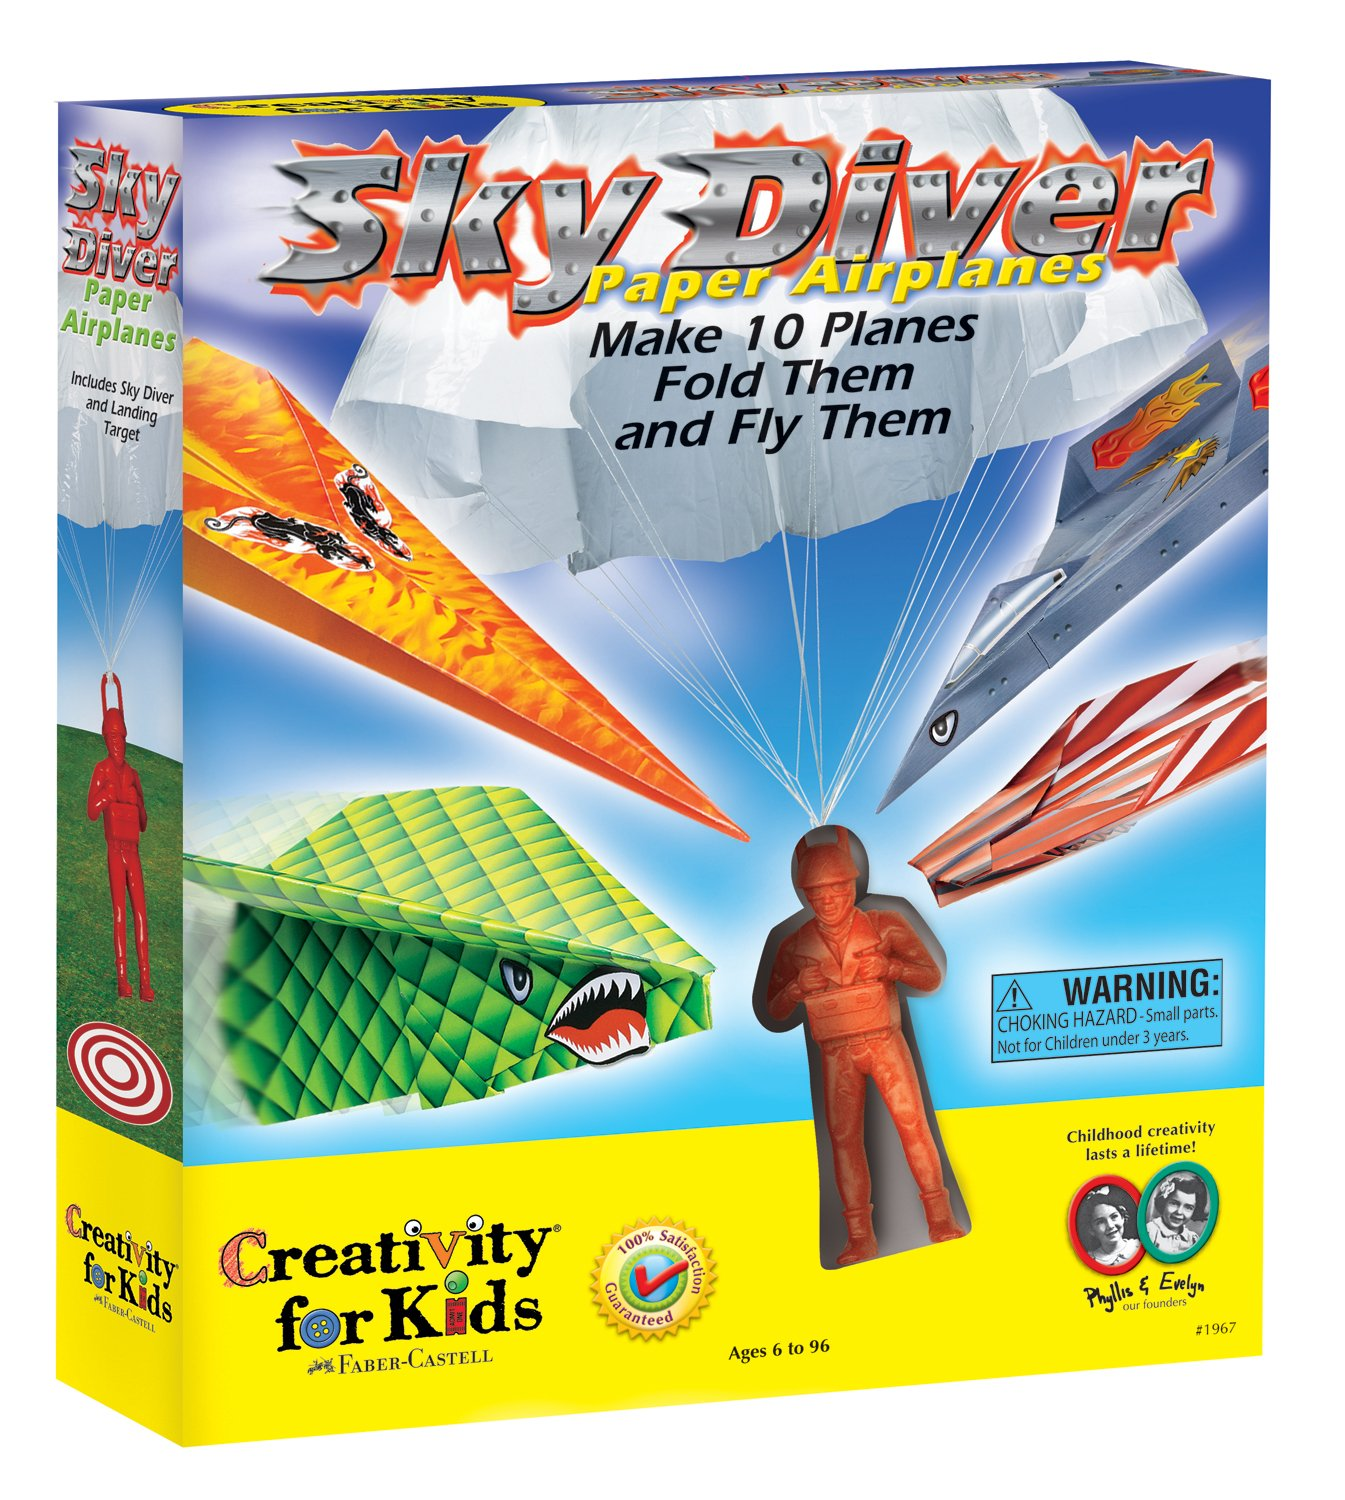 amazon com creativity for kids sky diver paper airplanes toys